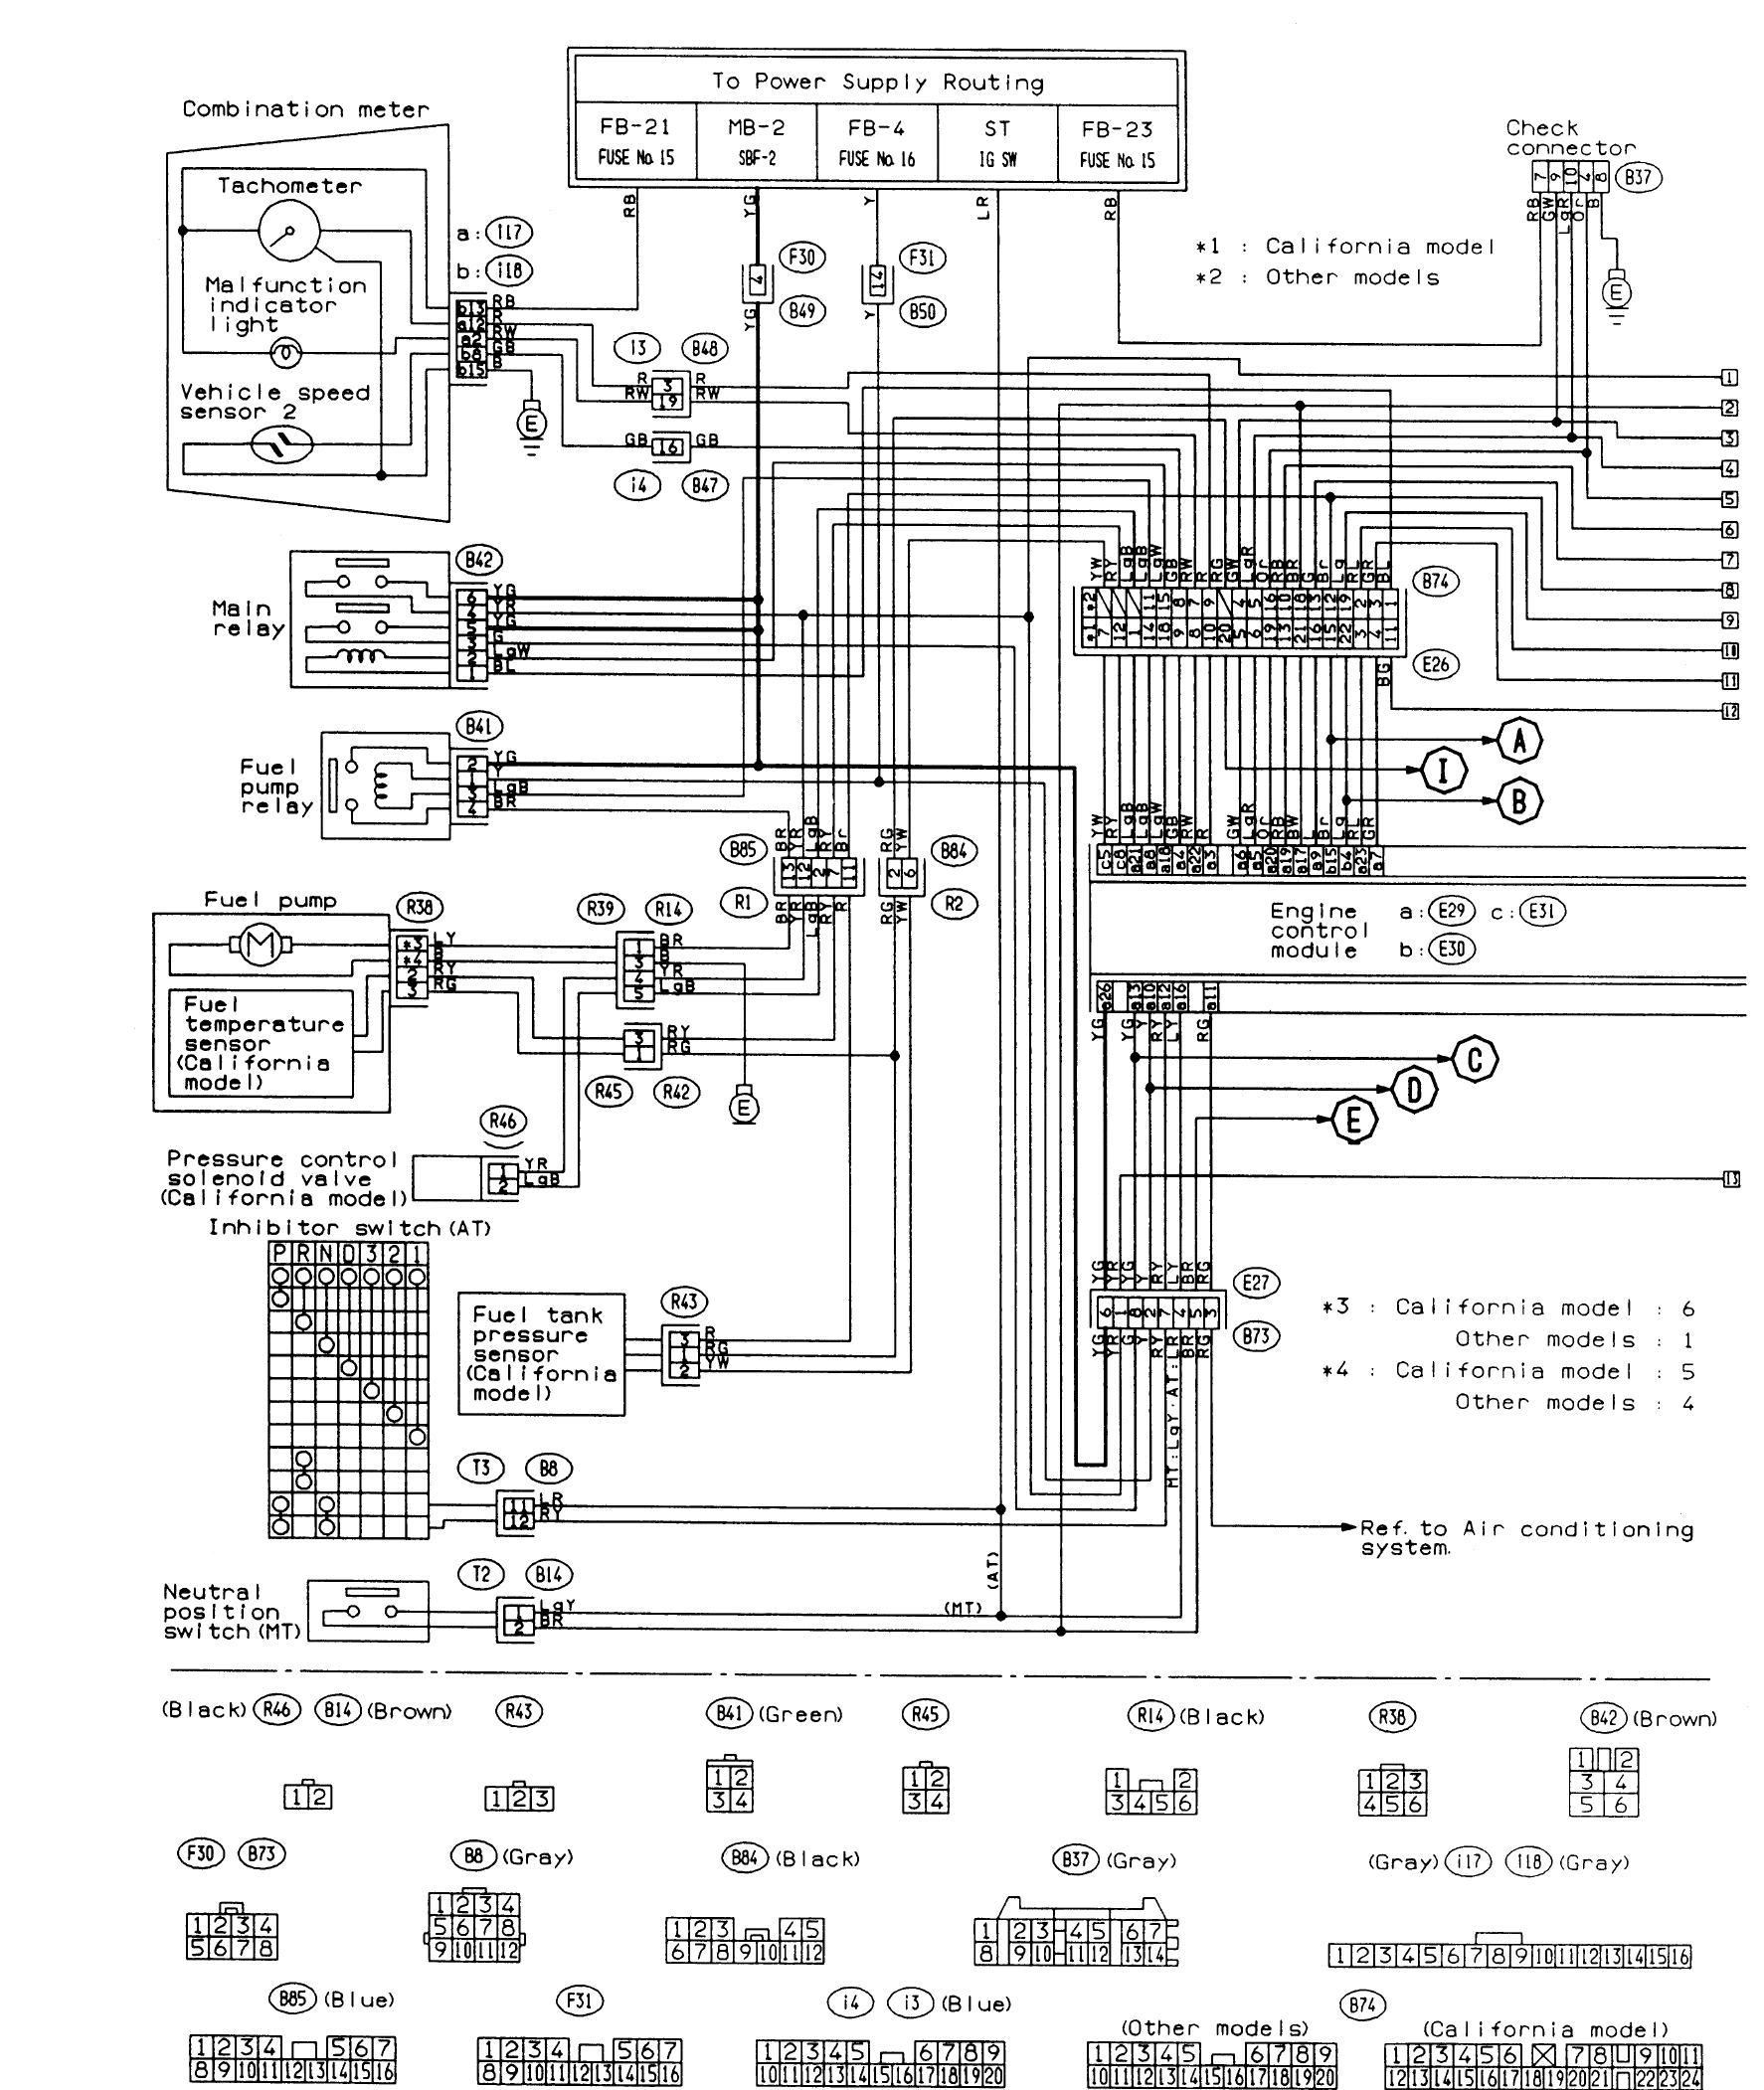 subaru ecu wiring diagram FUSlrCX wiring diagram for 2013 subaru outback radios readingrat net 2013 subaru impreza wiring diagram at webbmarketing.co